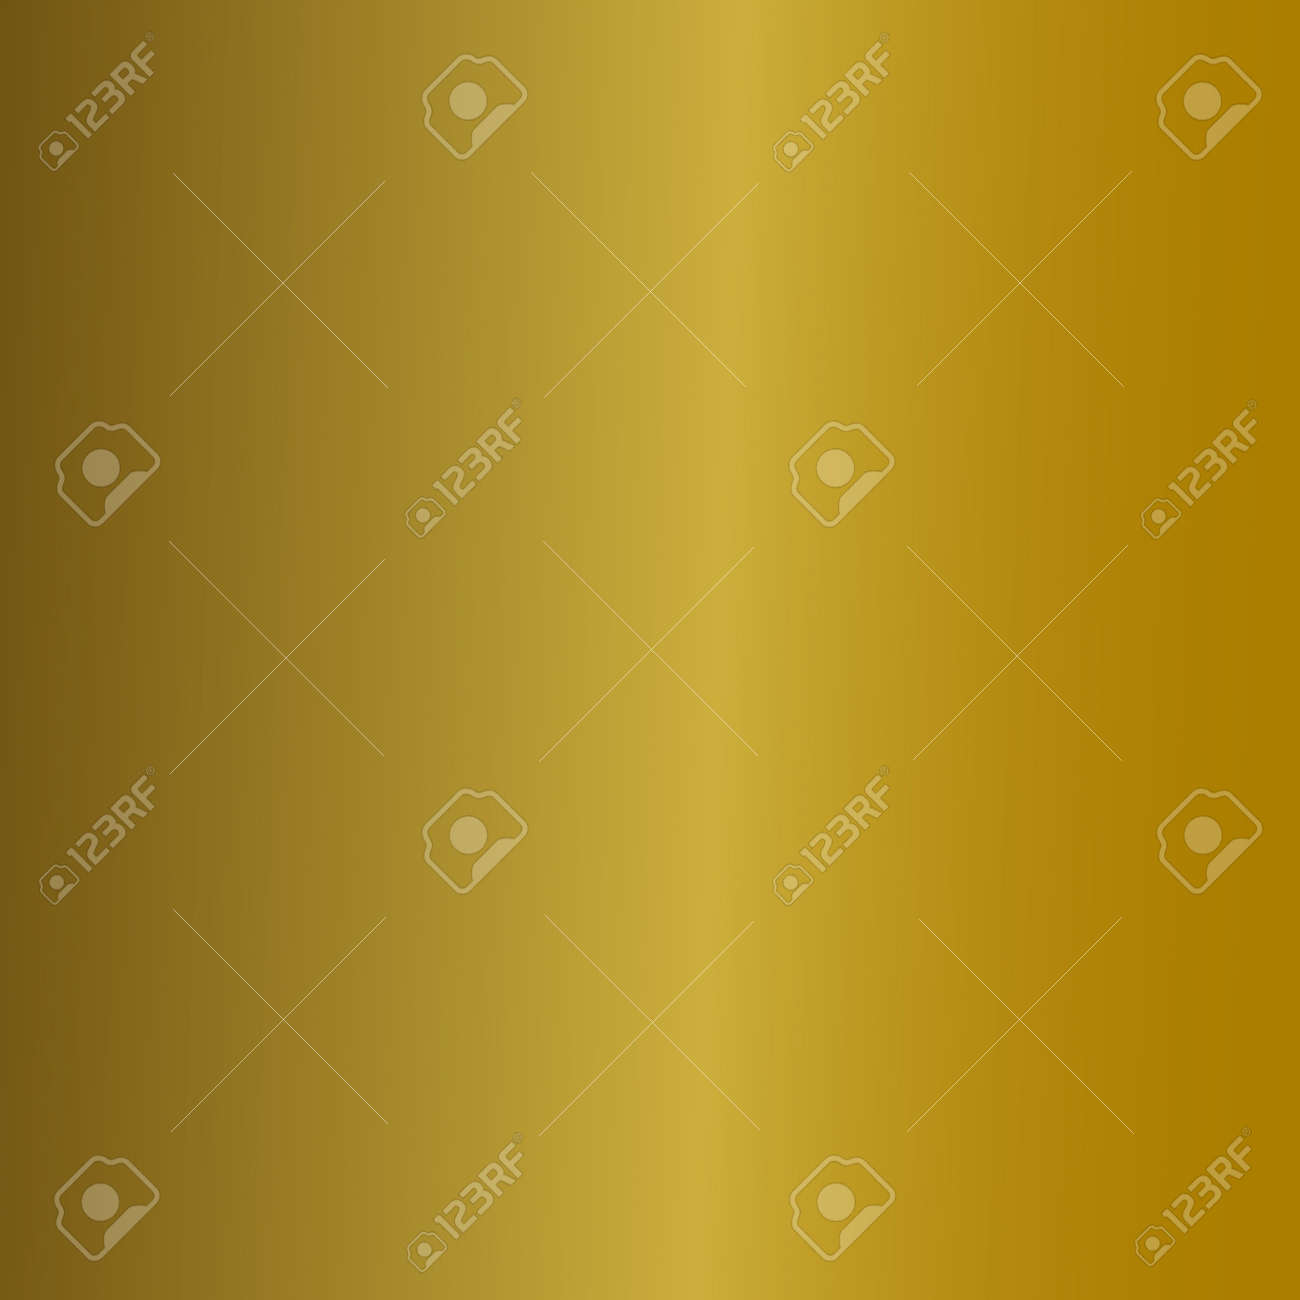 Gold Texture. Golden Gradient Smooth Material Background. Textured ...